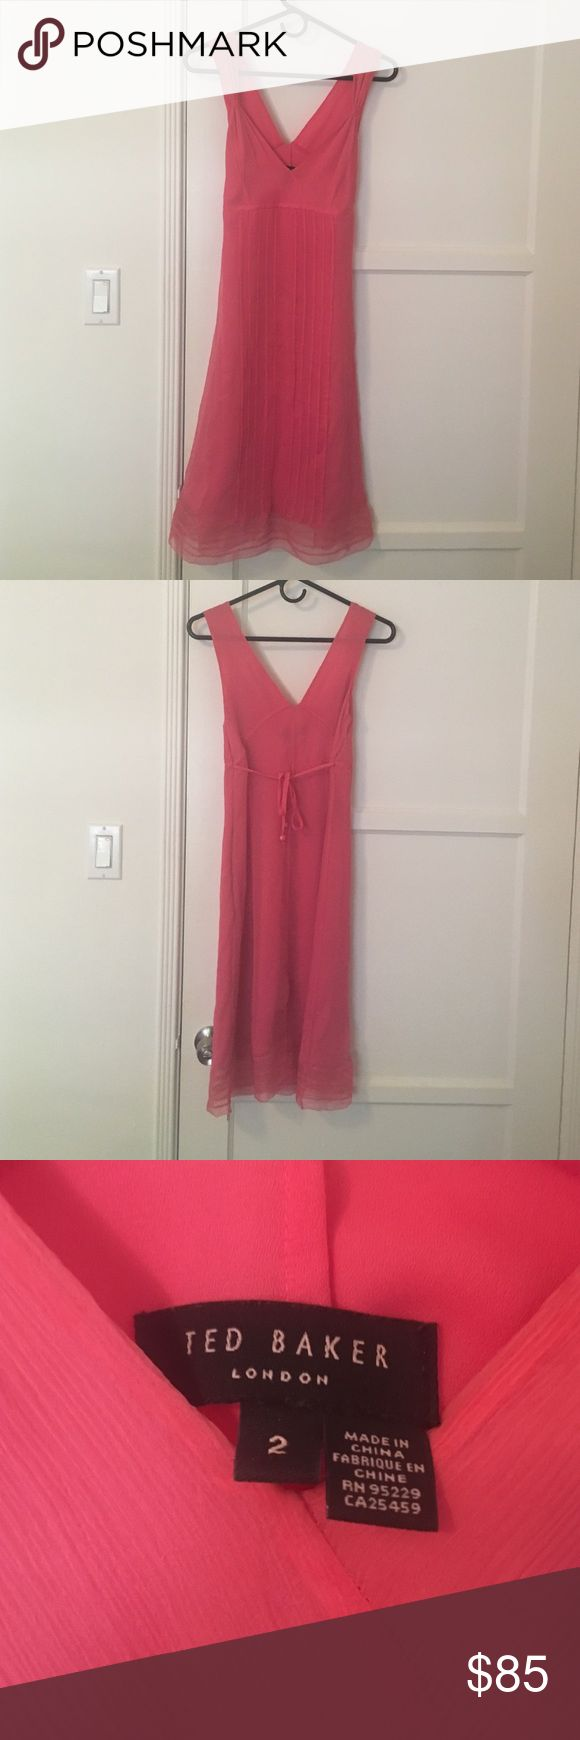 TED BAKER Pink dress - US 6 (Ted Baker size 2) TED BAKER Pink dress - US 6 (Ted Baker 2) Very pretty. Worn twice. Perfect for a summer party or a wedding Ted Baker Dresses